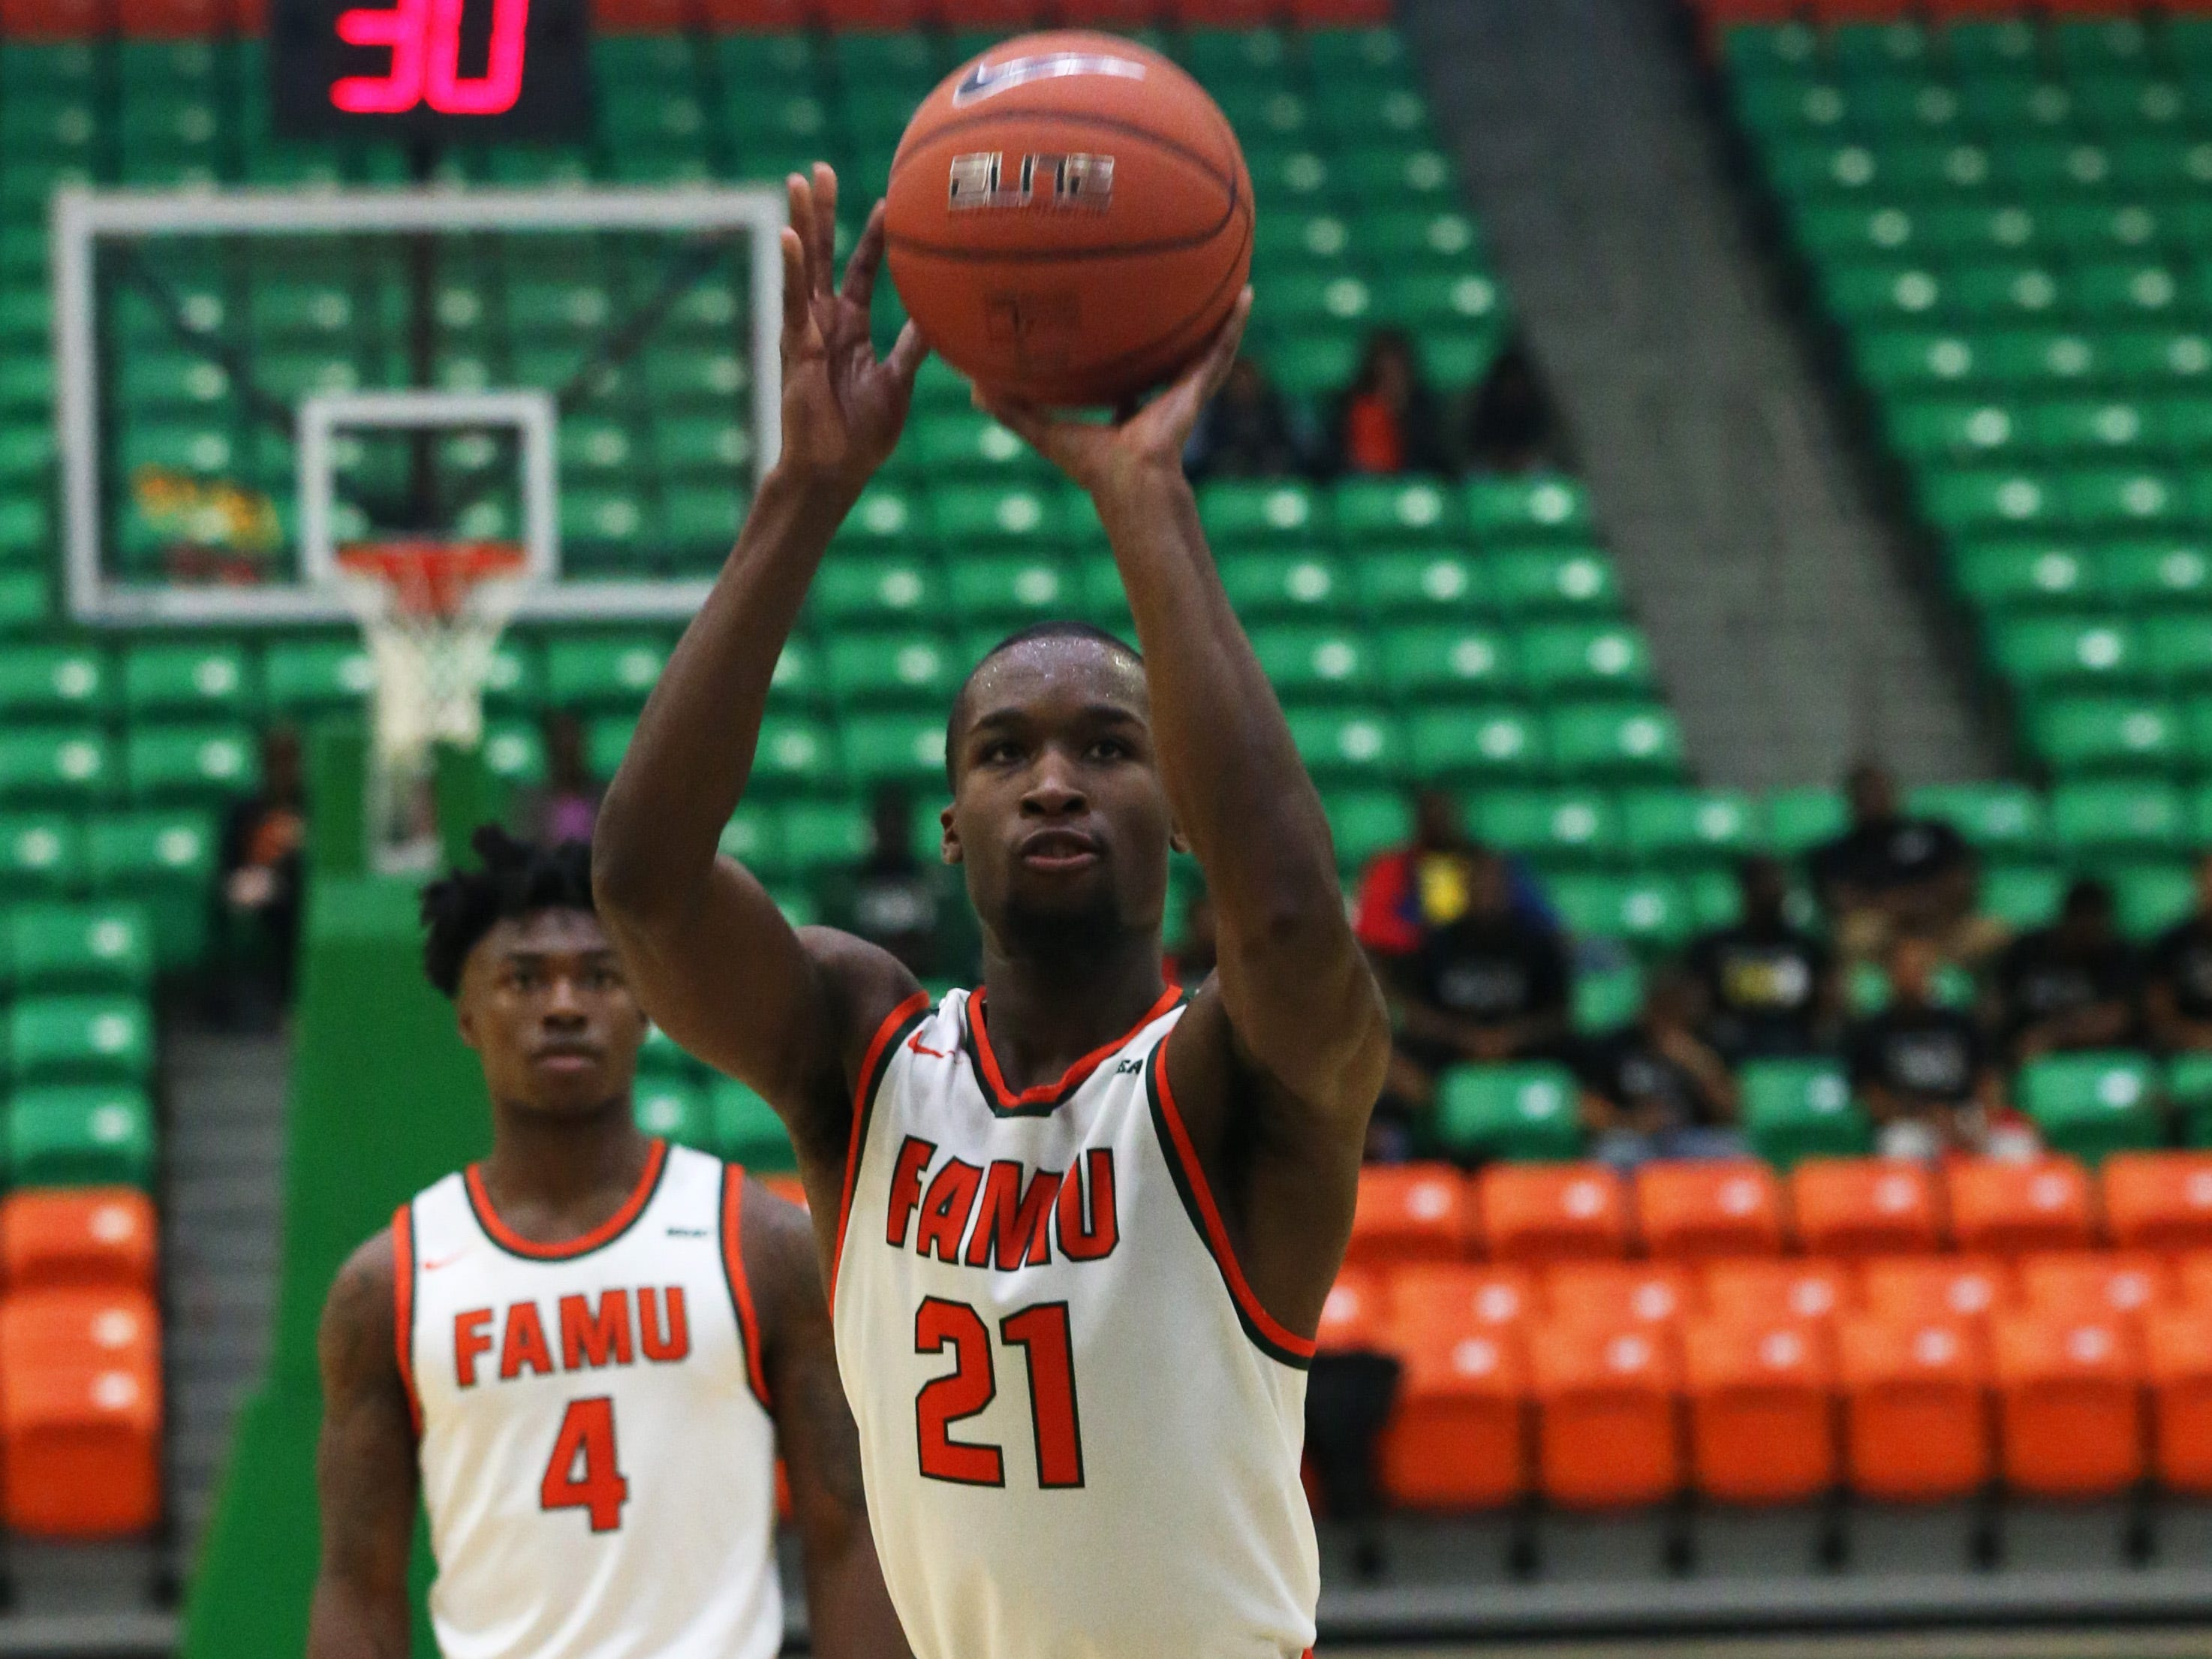 Florida A&M Rattlers guard Justin Ravenel (21) shoots a free throw as the FAMU Rattlers take on the Tuskegee Golden Tigers in their first home game of the season in the Lawson Center, Saturday, Nov. 10, 2018.